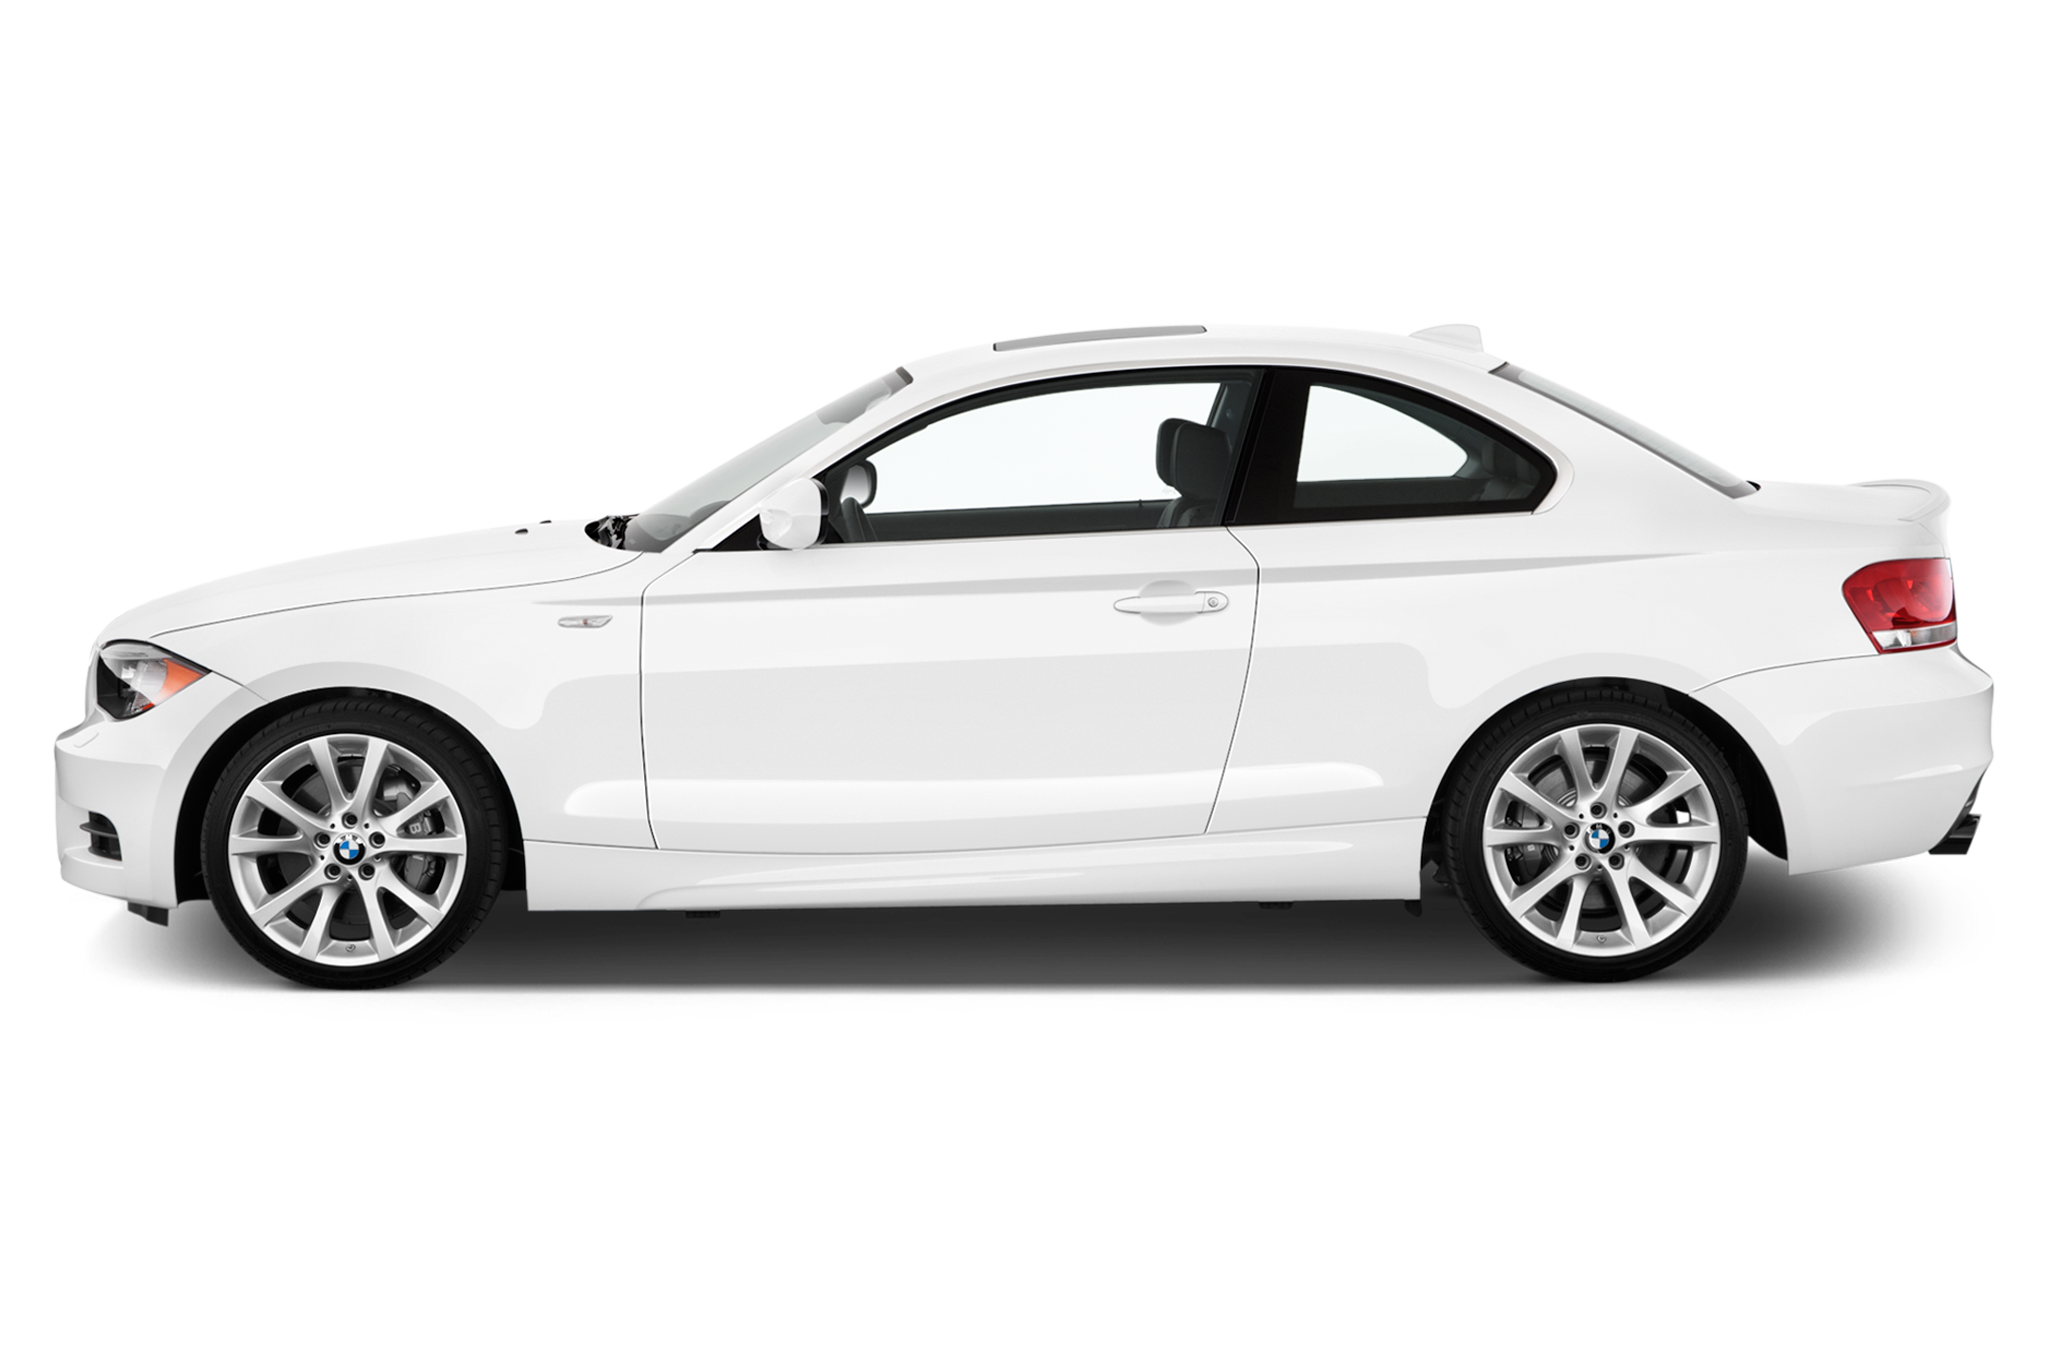 2012 BMW 1 Series Coupe, Convertible Gain Light Changes